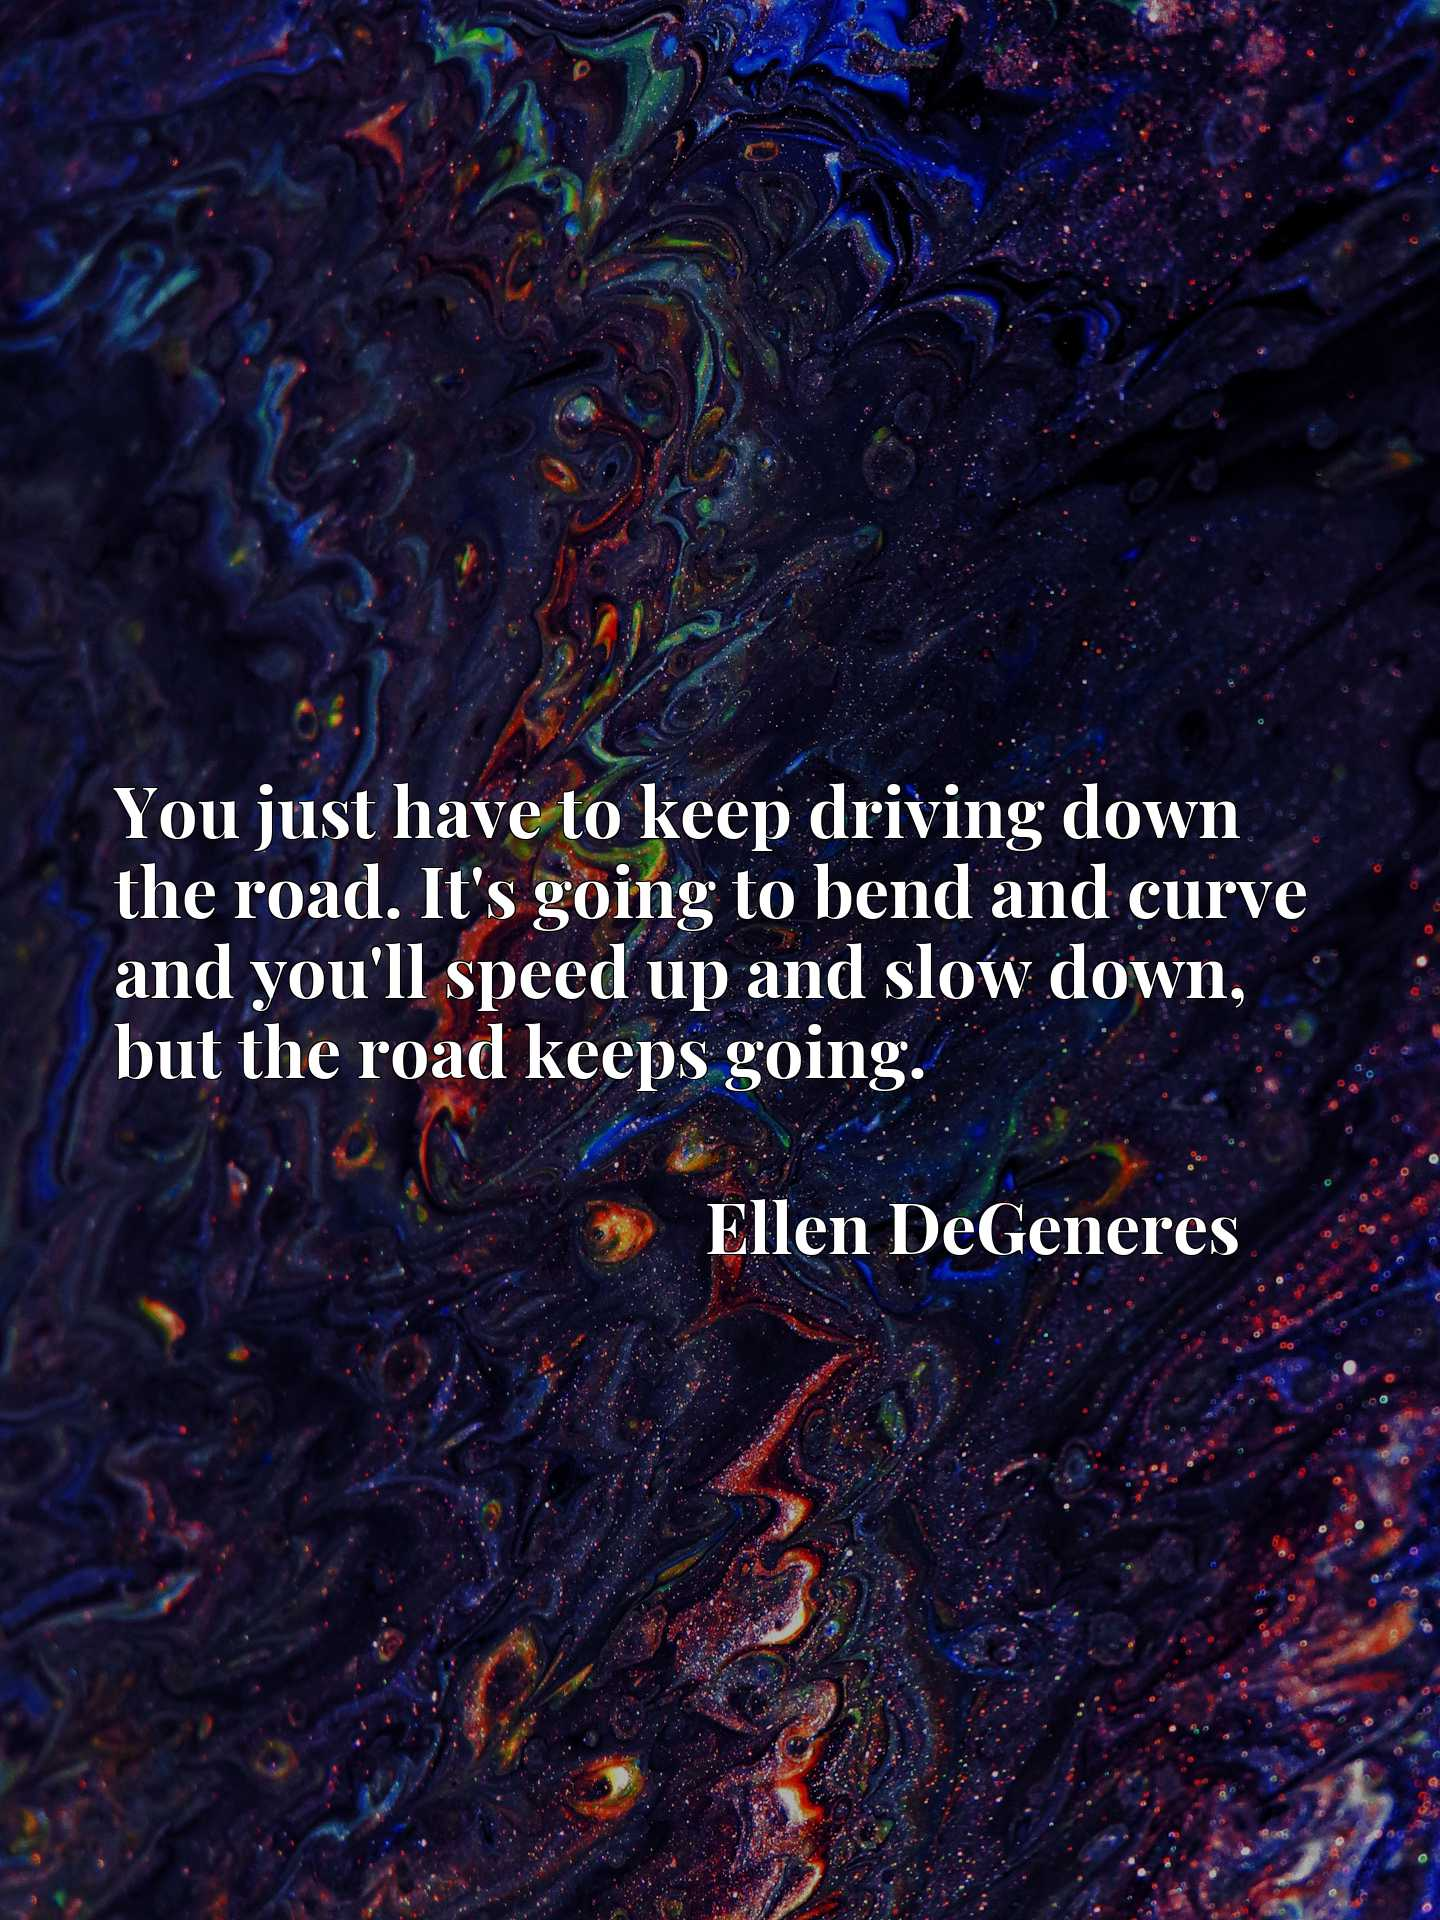 You just have to keep driving down the road. It's going to bend and curve and you'll speed up and slow down, but the road keeps going.